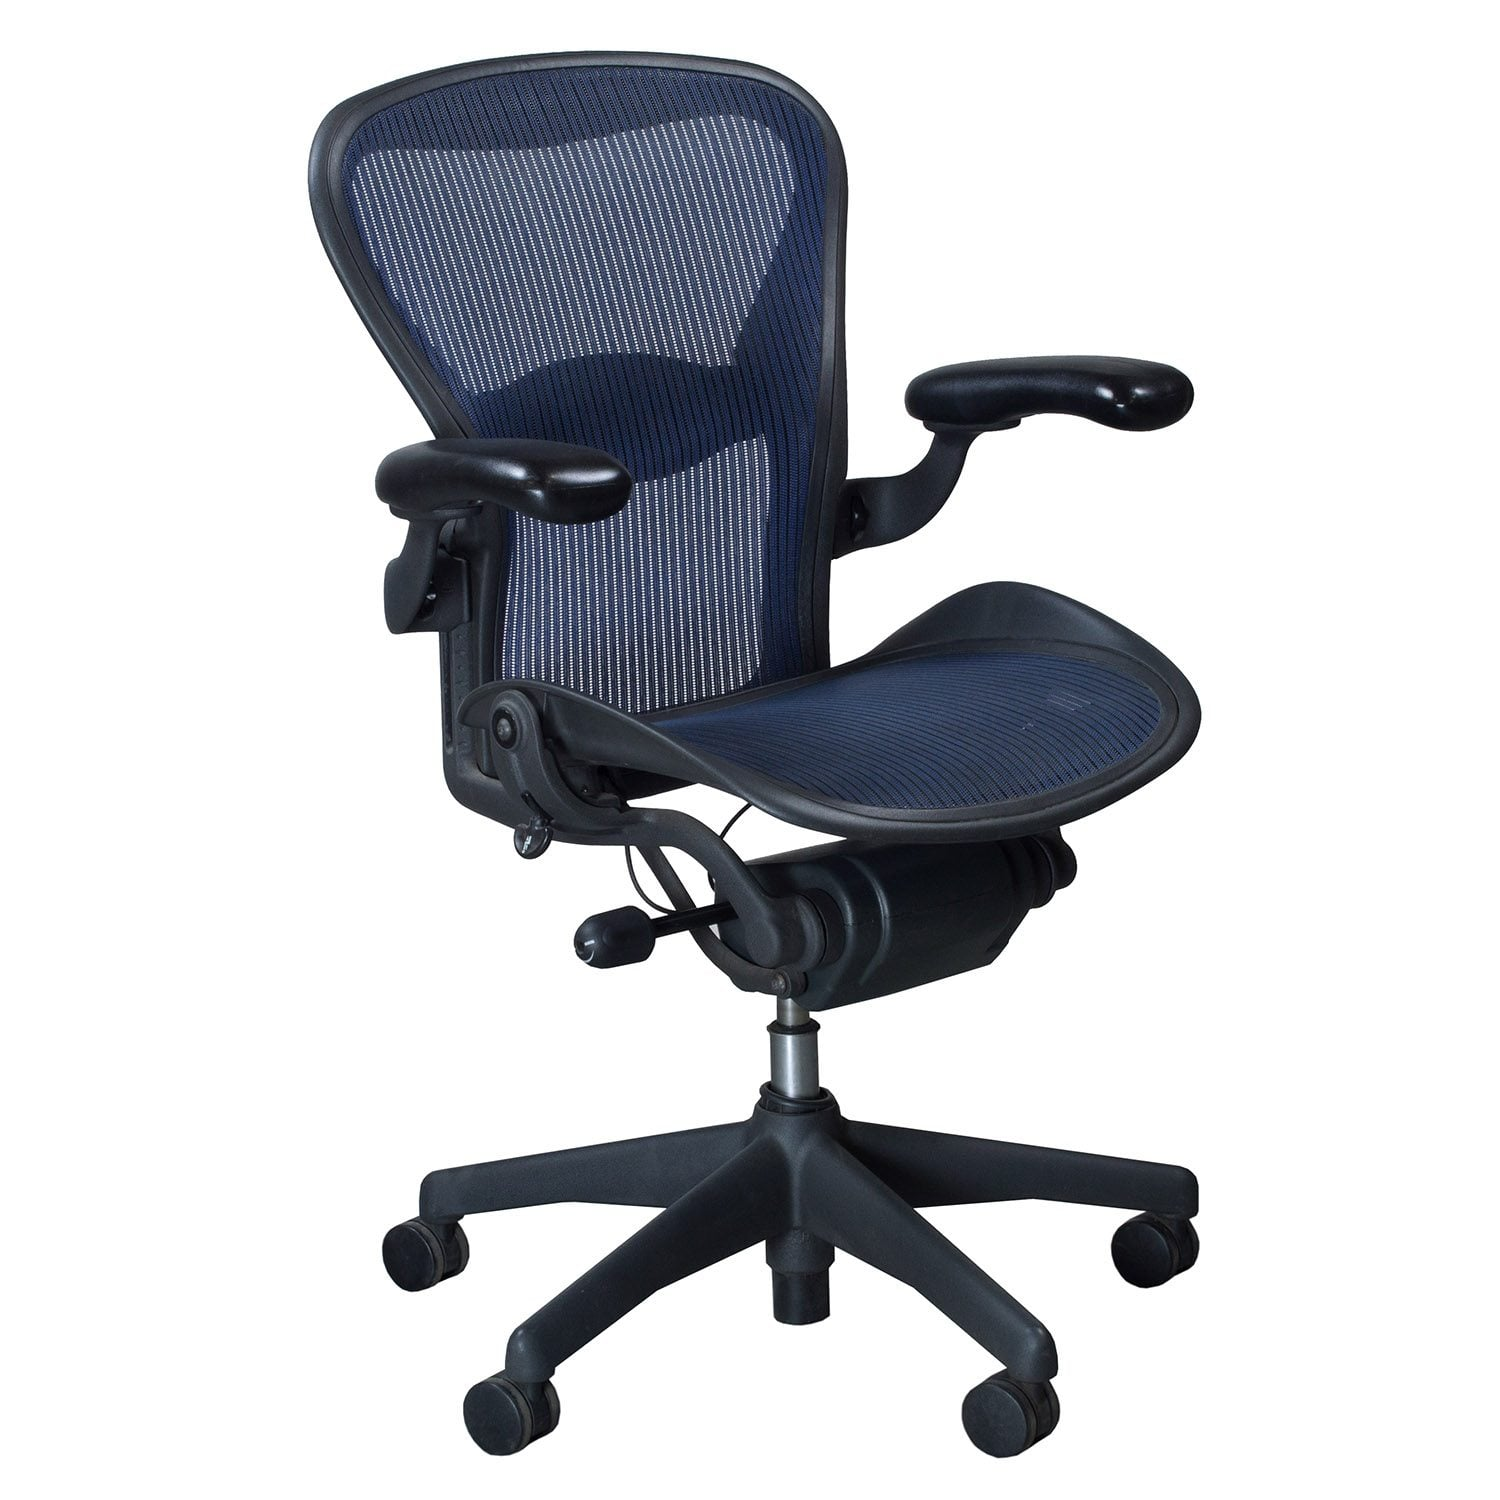 aeron chair accessories unique rocking chairs herman miller used size b task cobalt